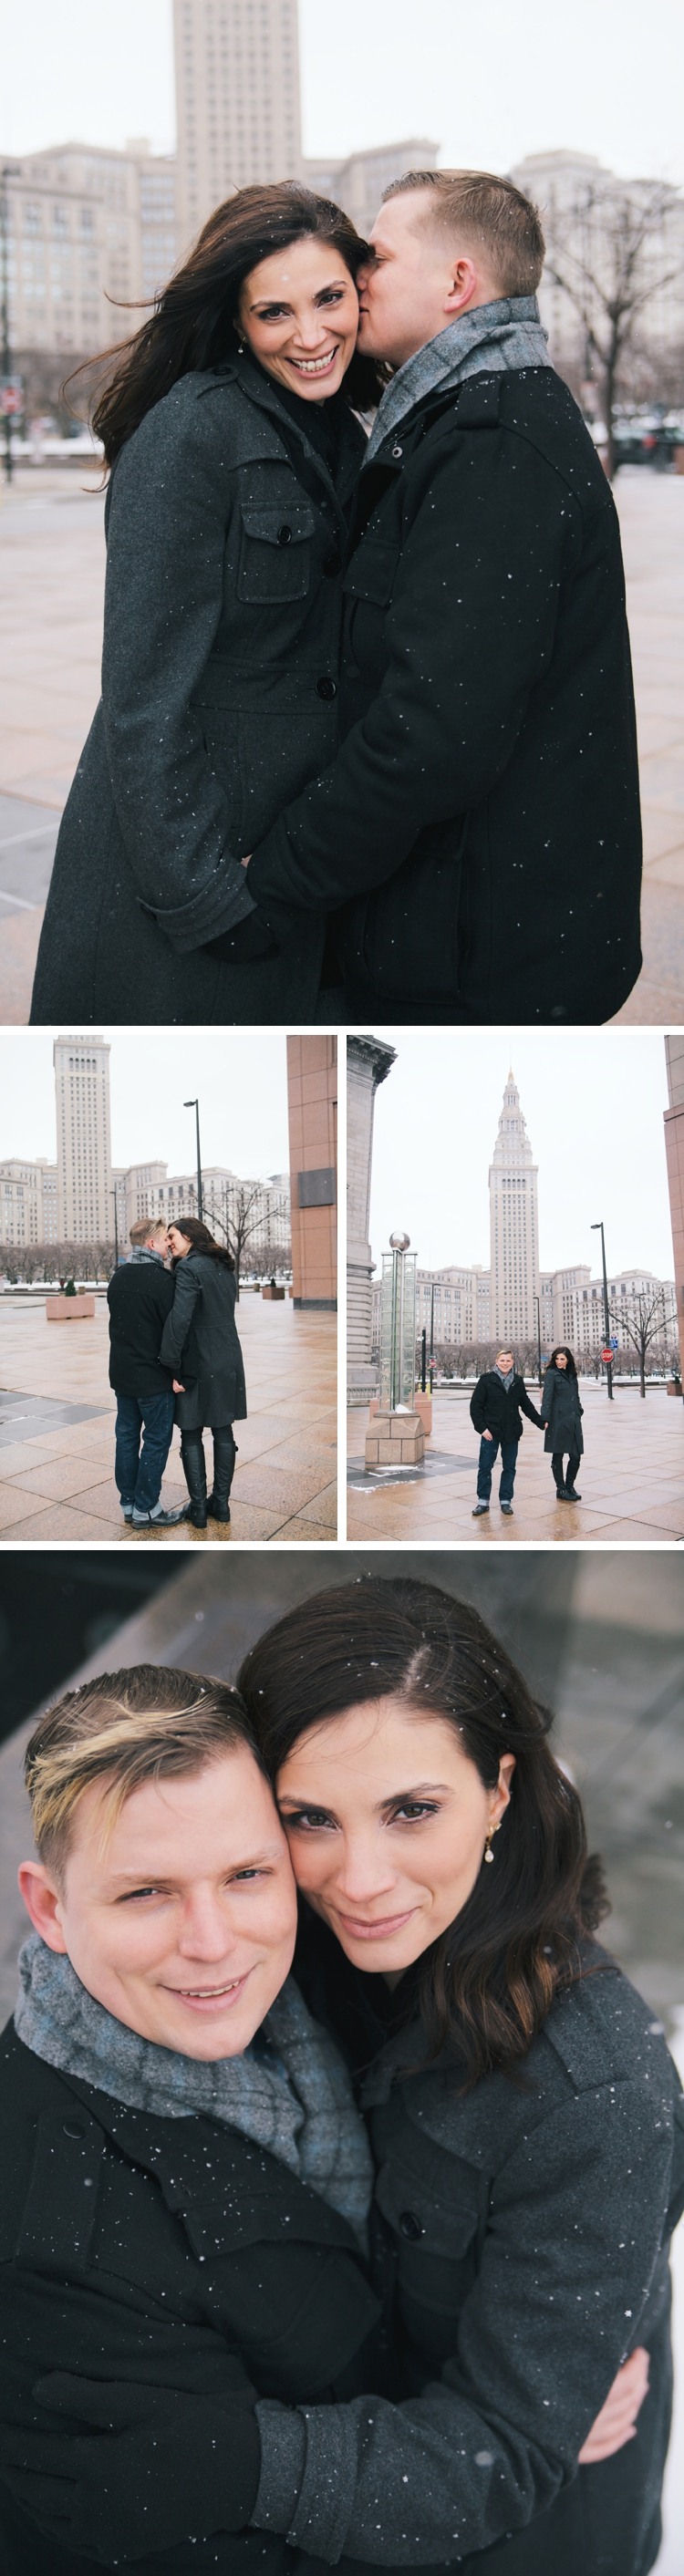 Downtown Cleveland Art Deco Engagement Photo